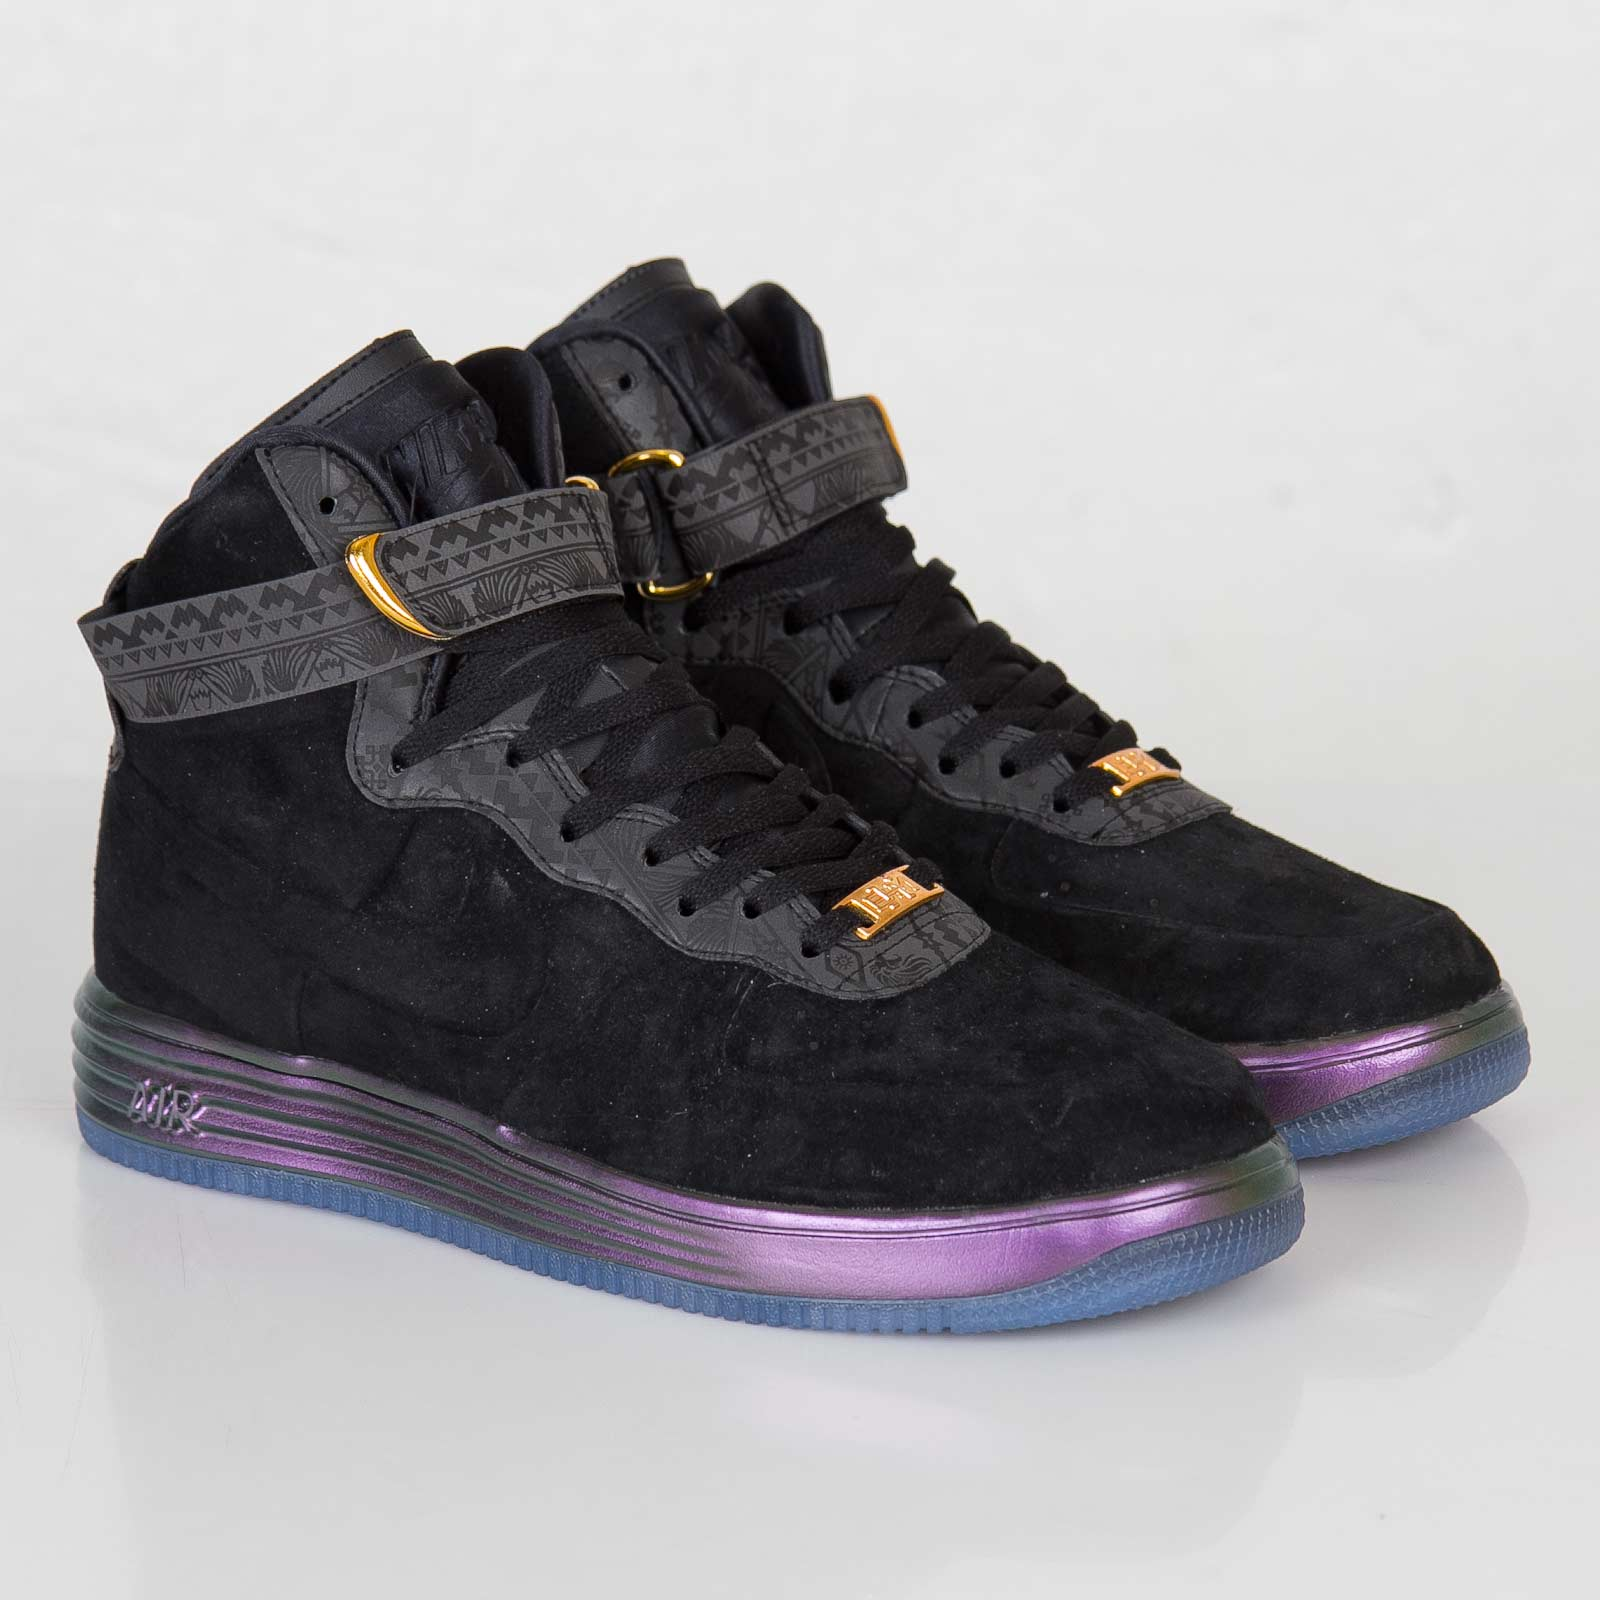 on sale 0d4ce 5f66c Nike Lunar Force 1 Lux BHM QS